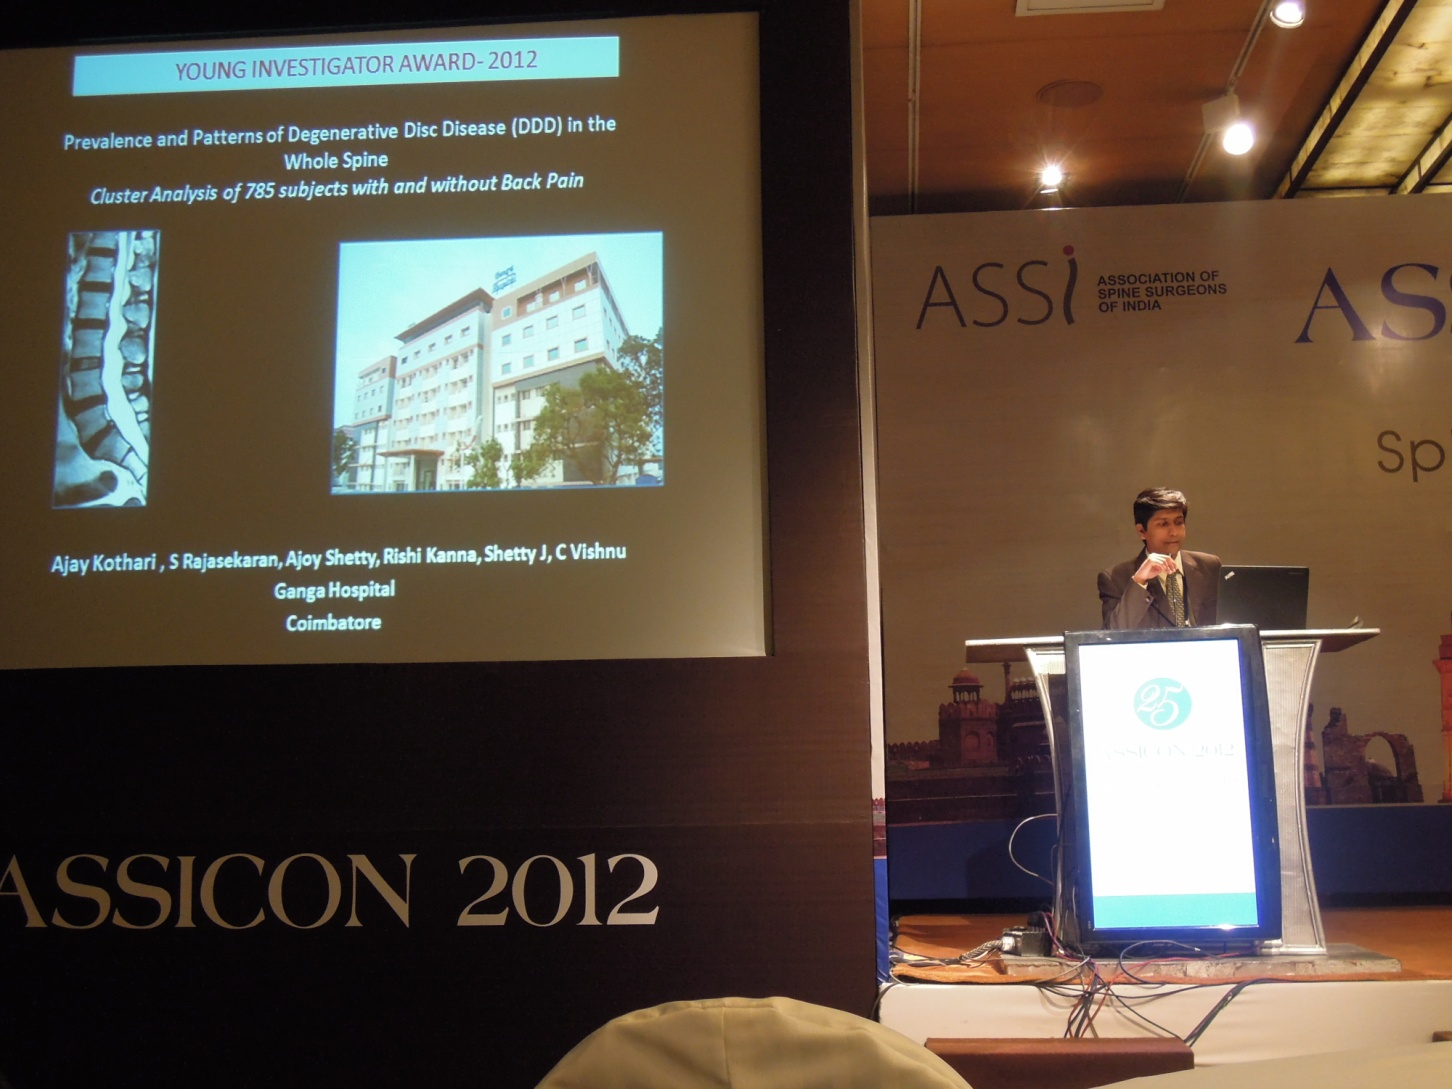 Young Investigator Award 2012 New Delhi at ASSICON 2012|Dr. Ajay Kothari|Shivaji Nagar,Pune